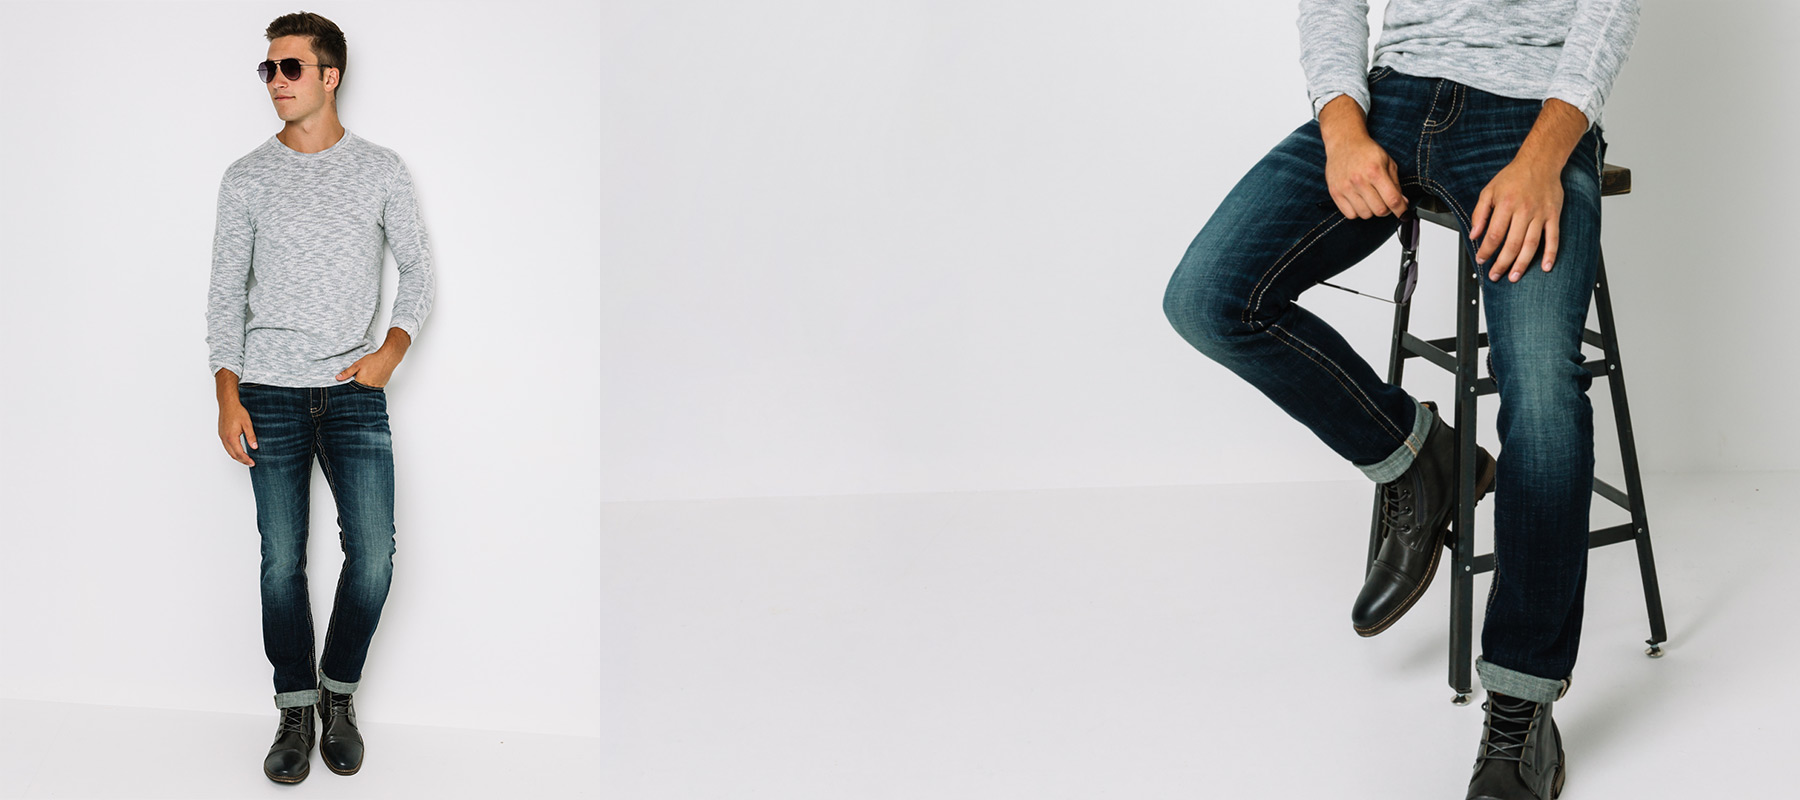 Guy sitting on stool wearing dark, clean jeans and black boots from Buckle.